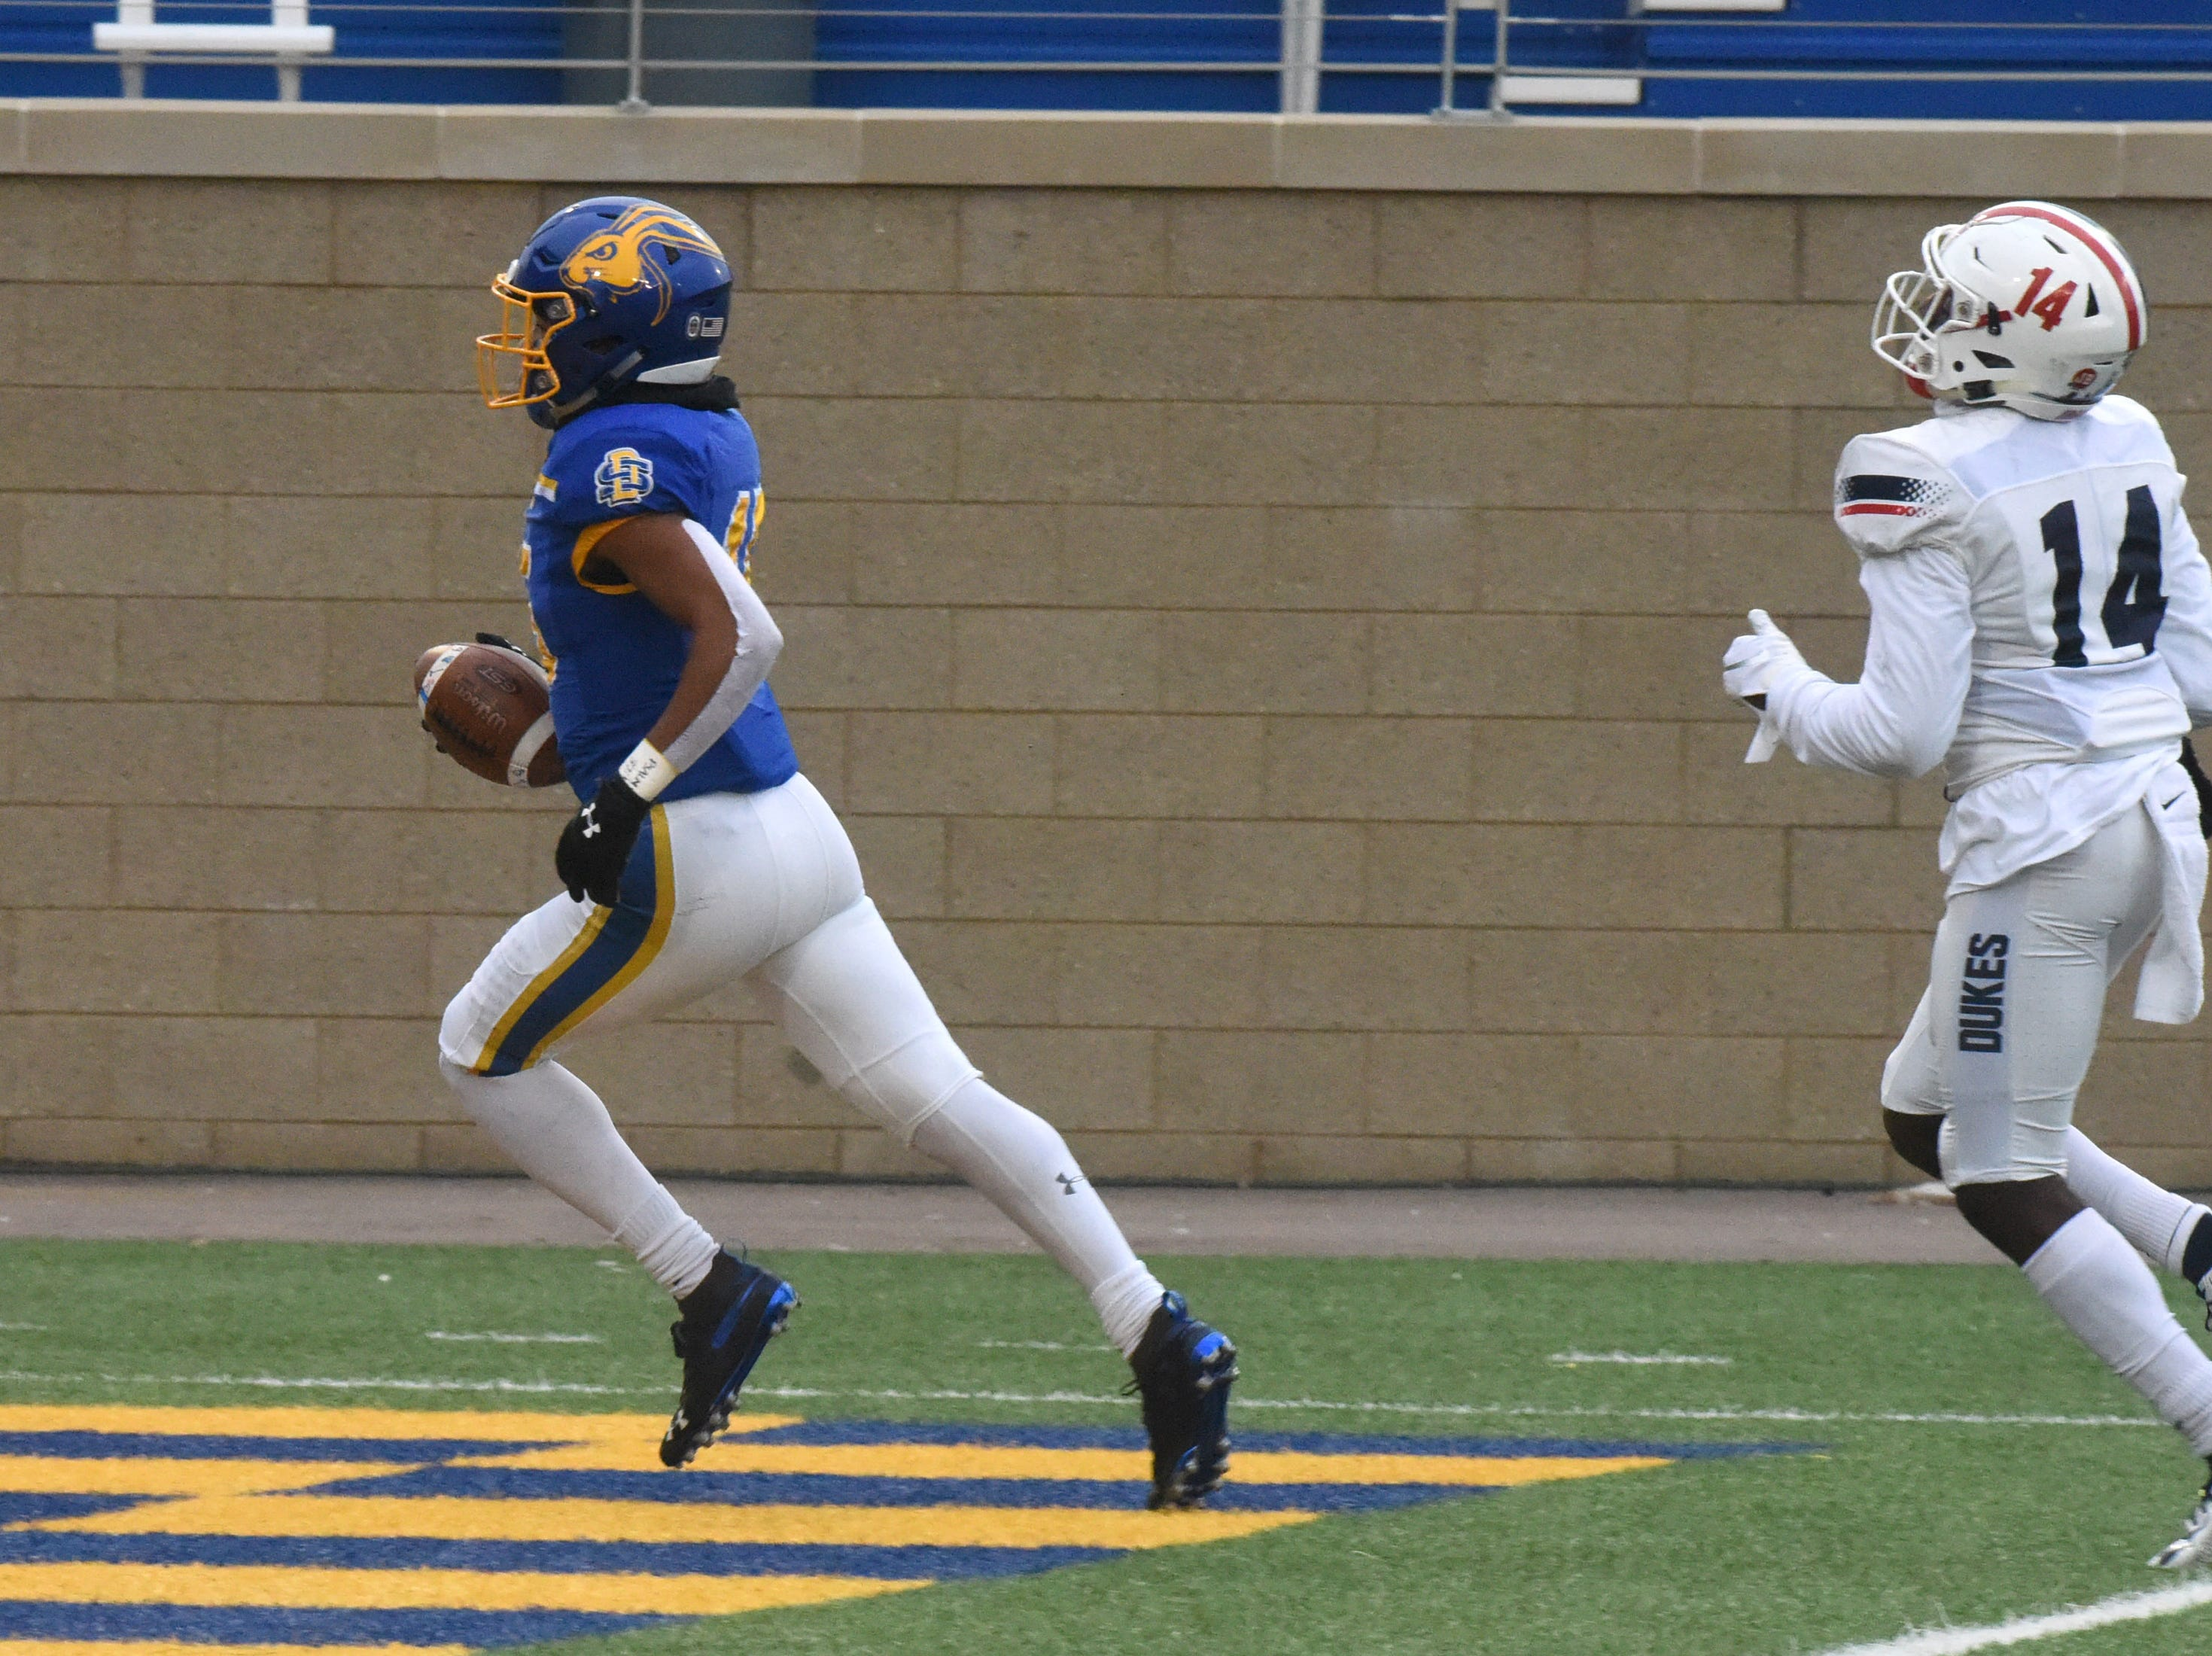 SDSU's Cade Johnson (15) scores a touchdown during the FCS playoff game against Duquesne in Brookings, S.D., Saturday, Dec. 1, 2018.